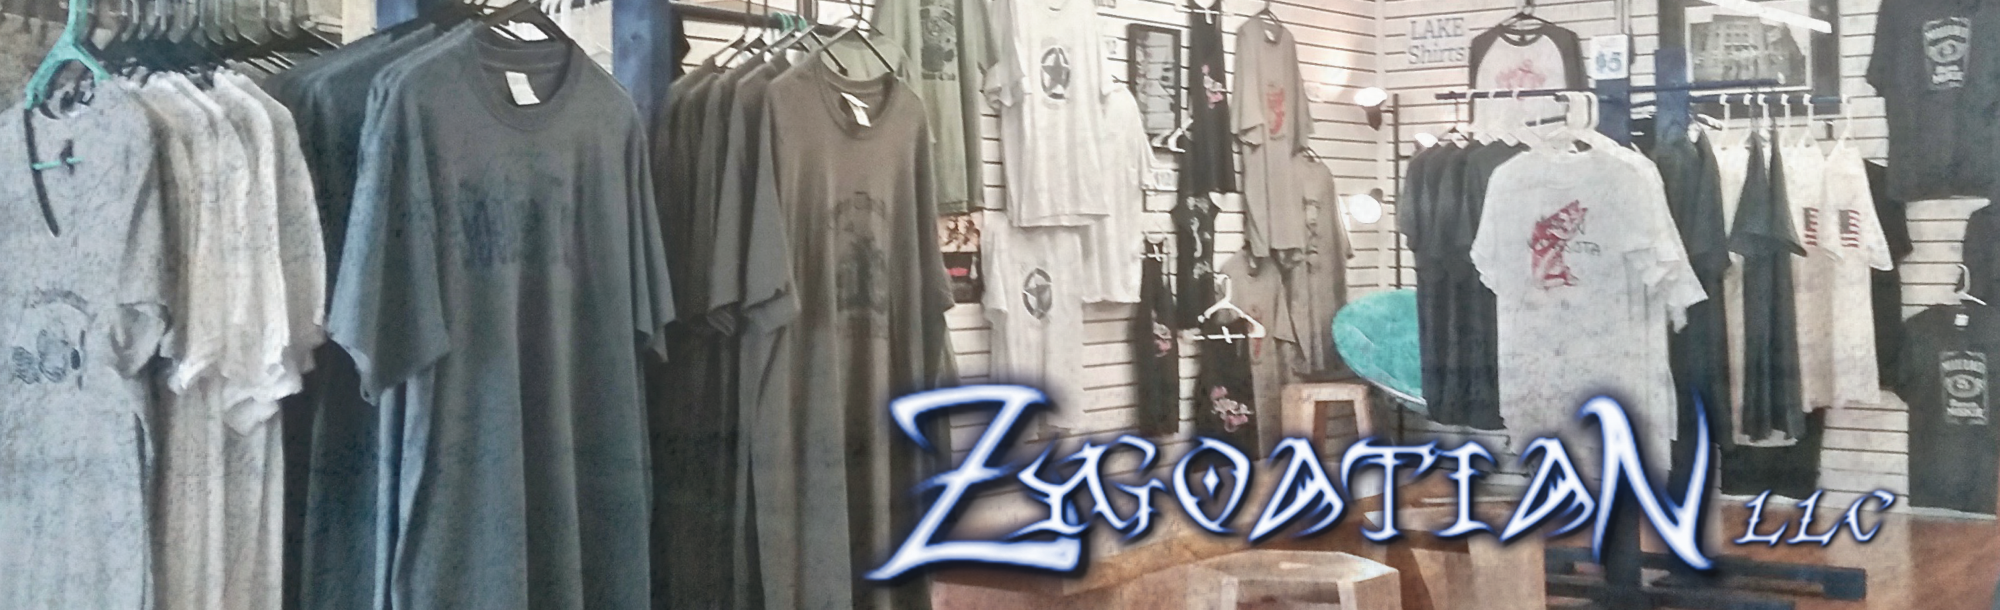 ZYGOATIAN – Promotional Goods